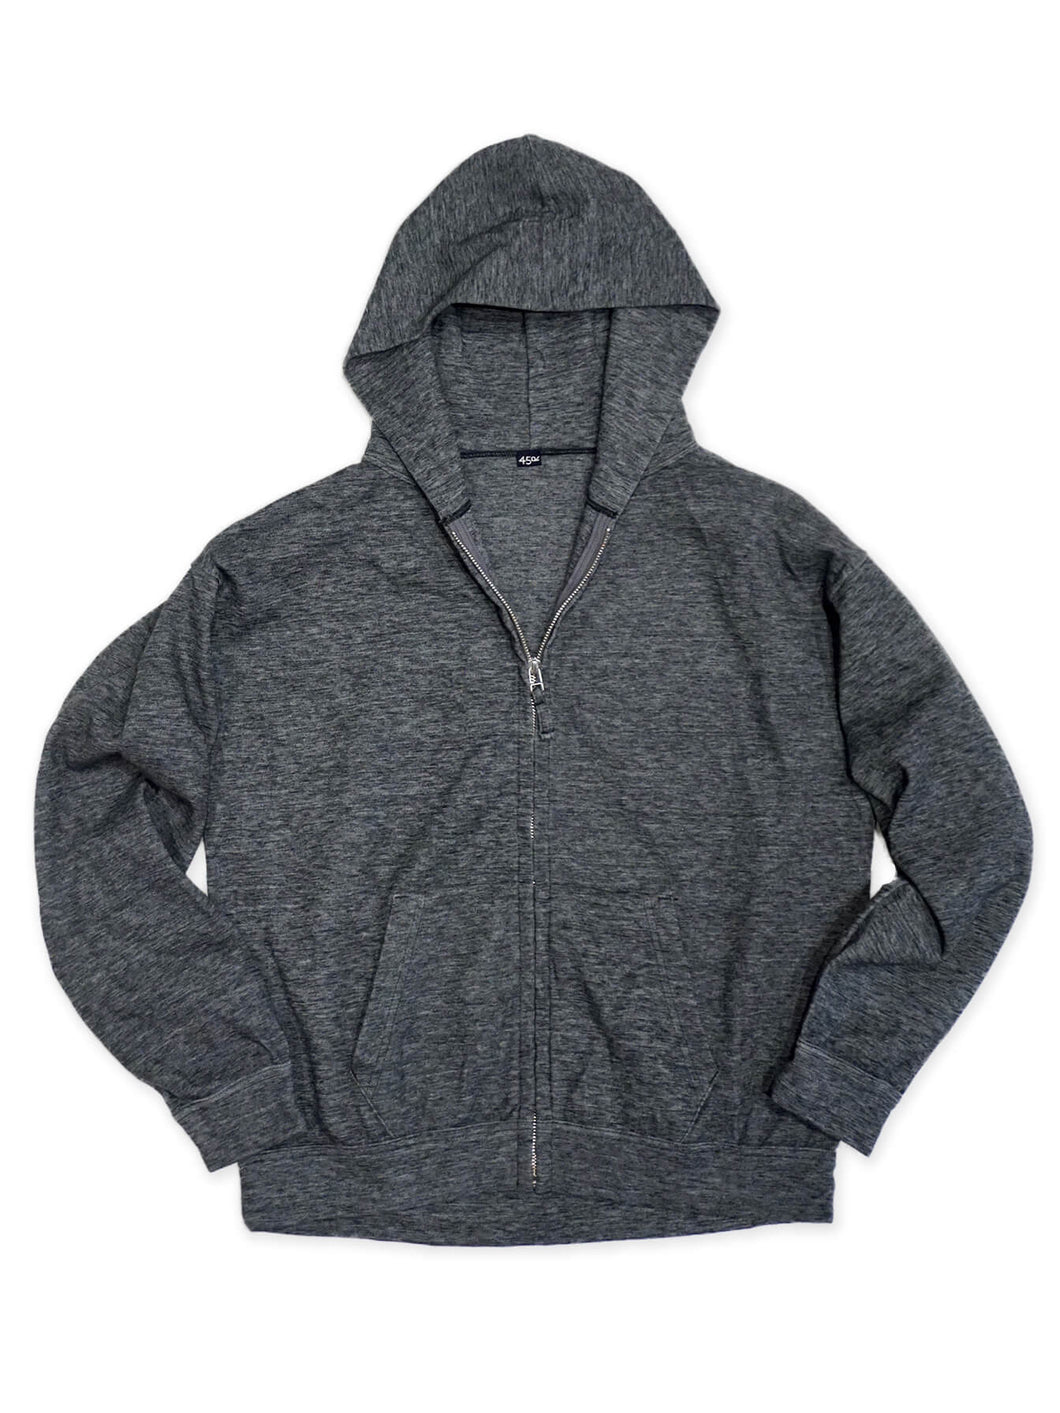 Cotton Blend Hoodie in Charcoal Moku